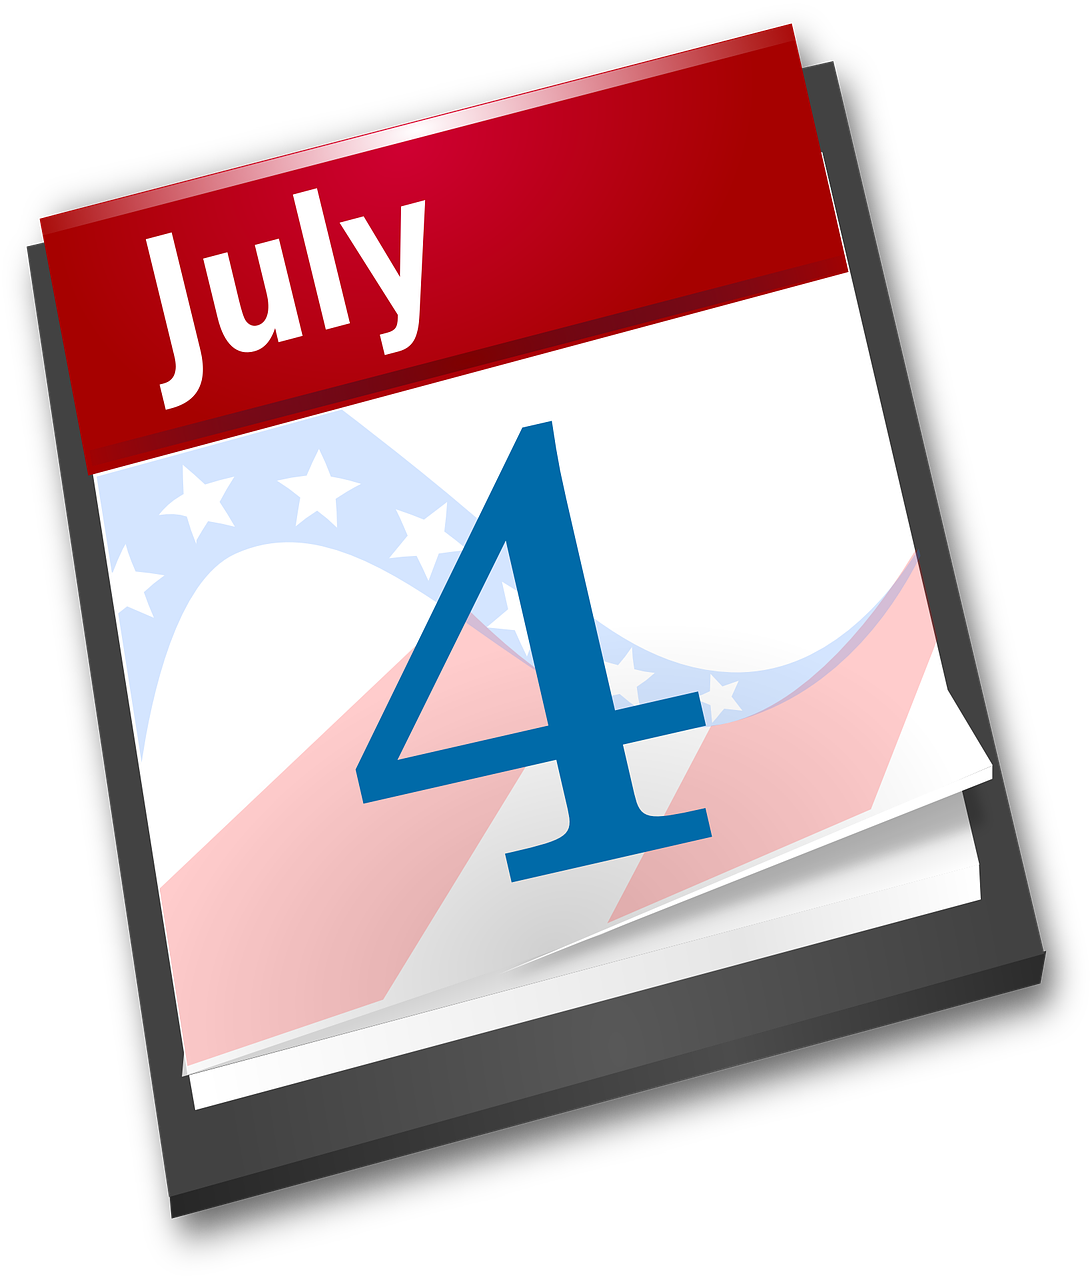 Independence Day July 4th Png image #43019